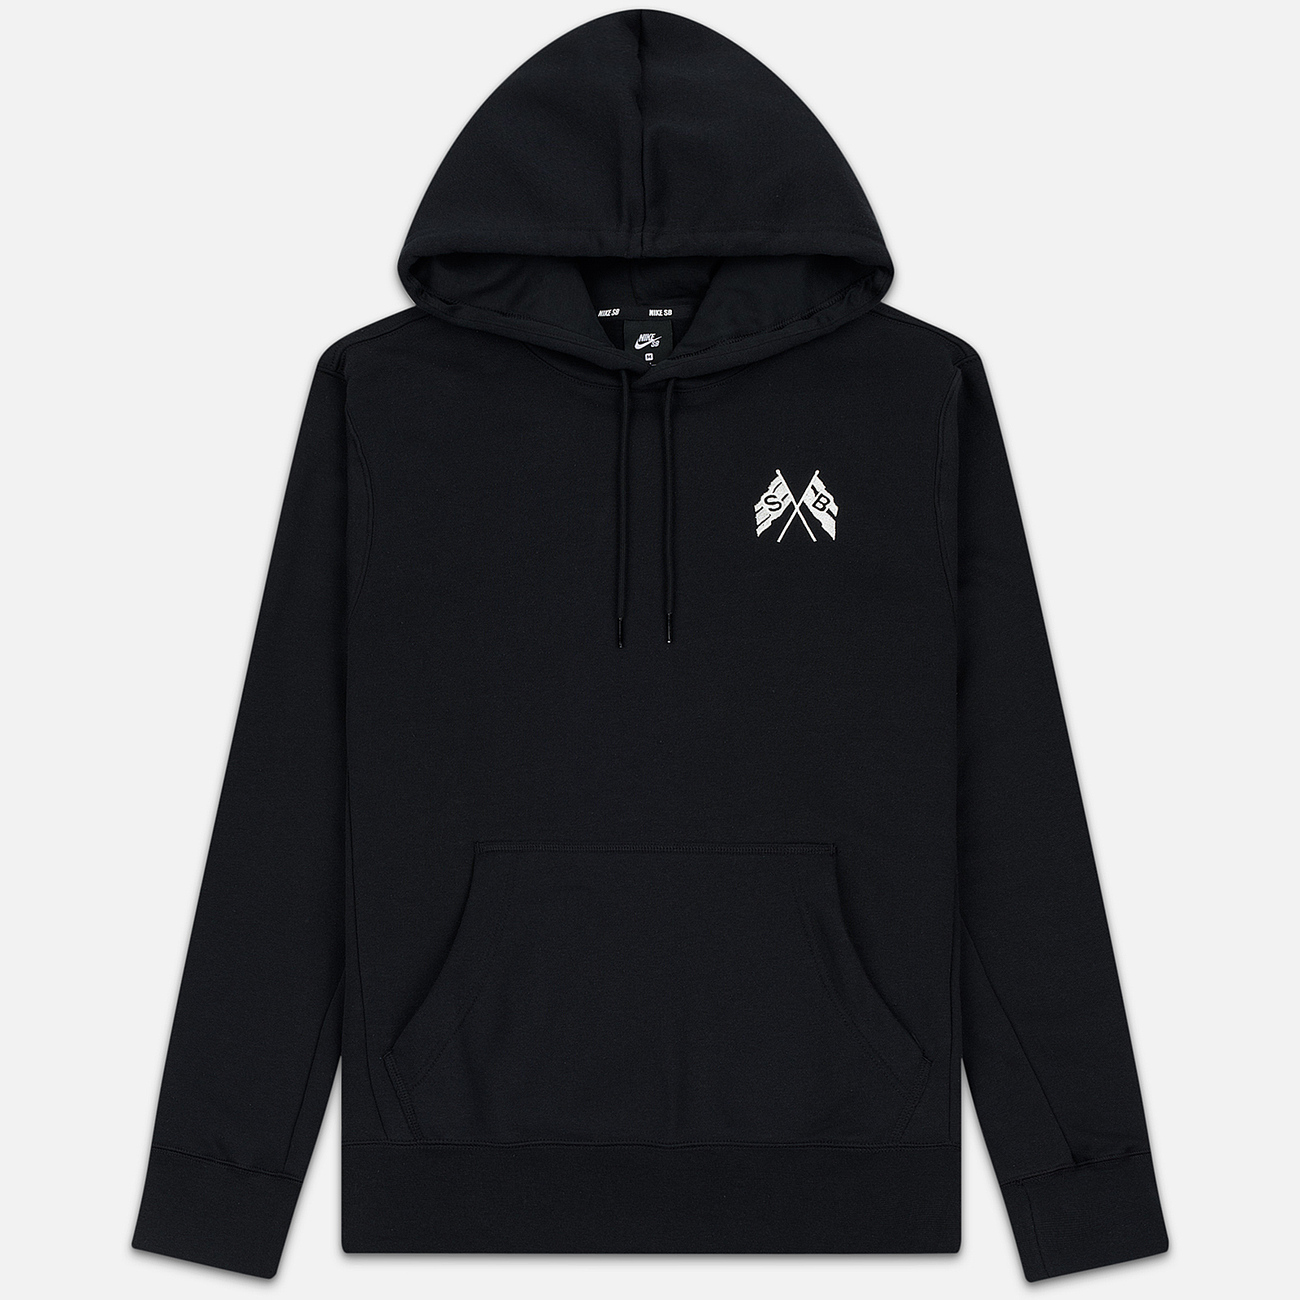 Мужская толстовка Nike SB Skate Hoodie Black/Summit White